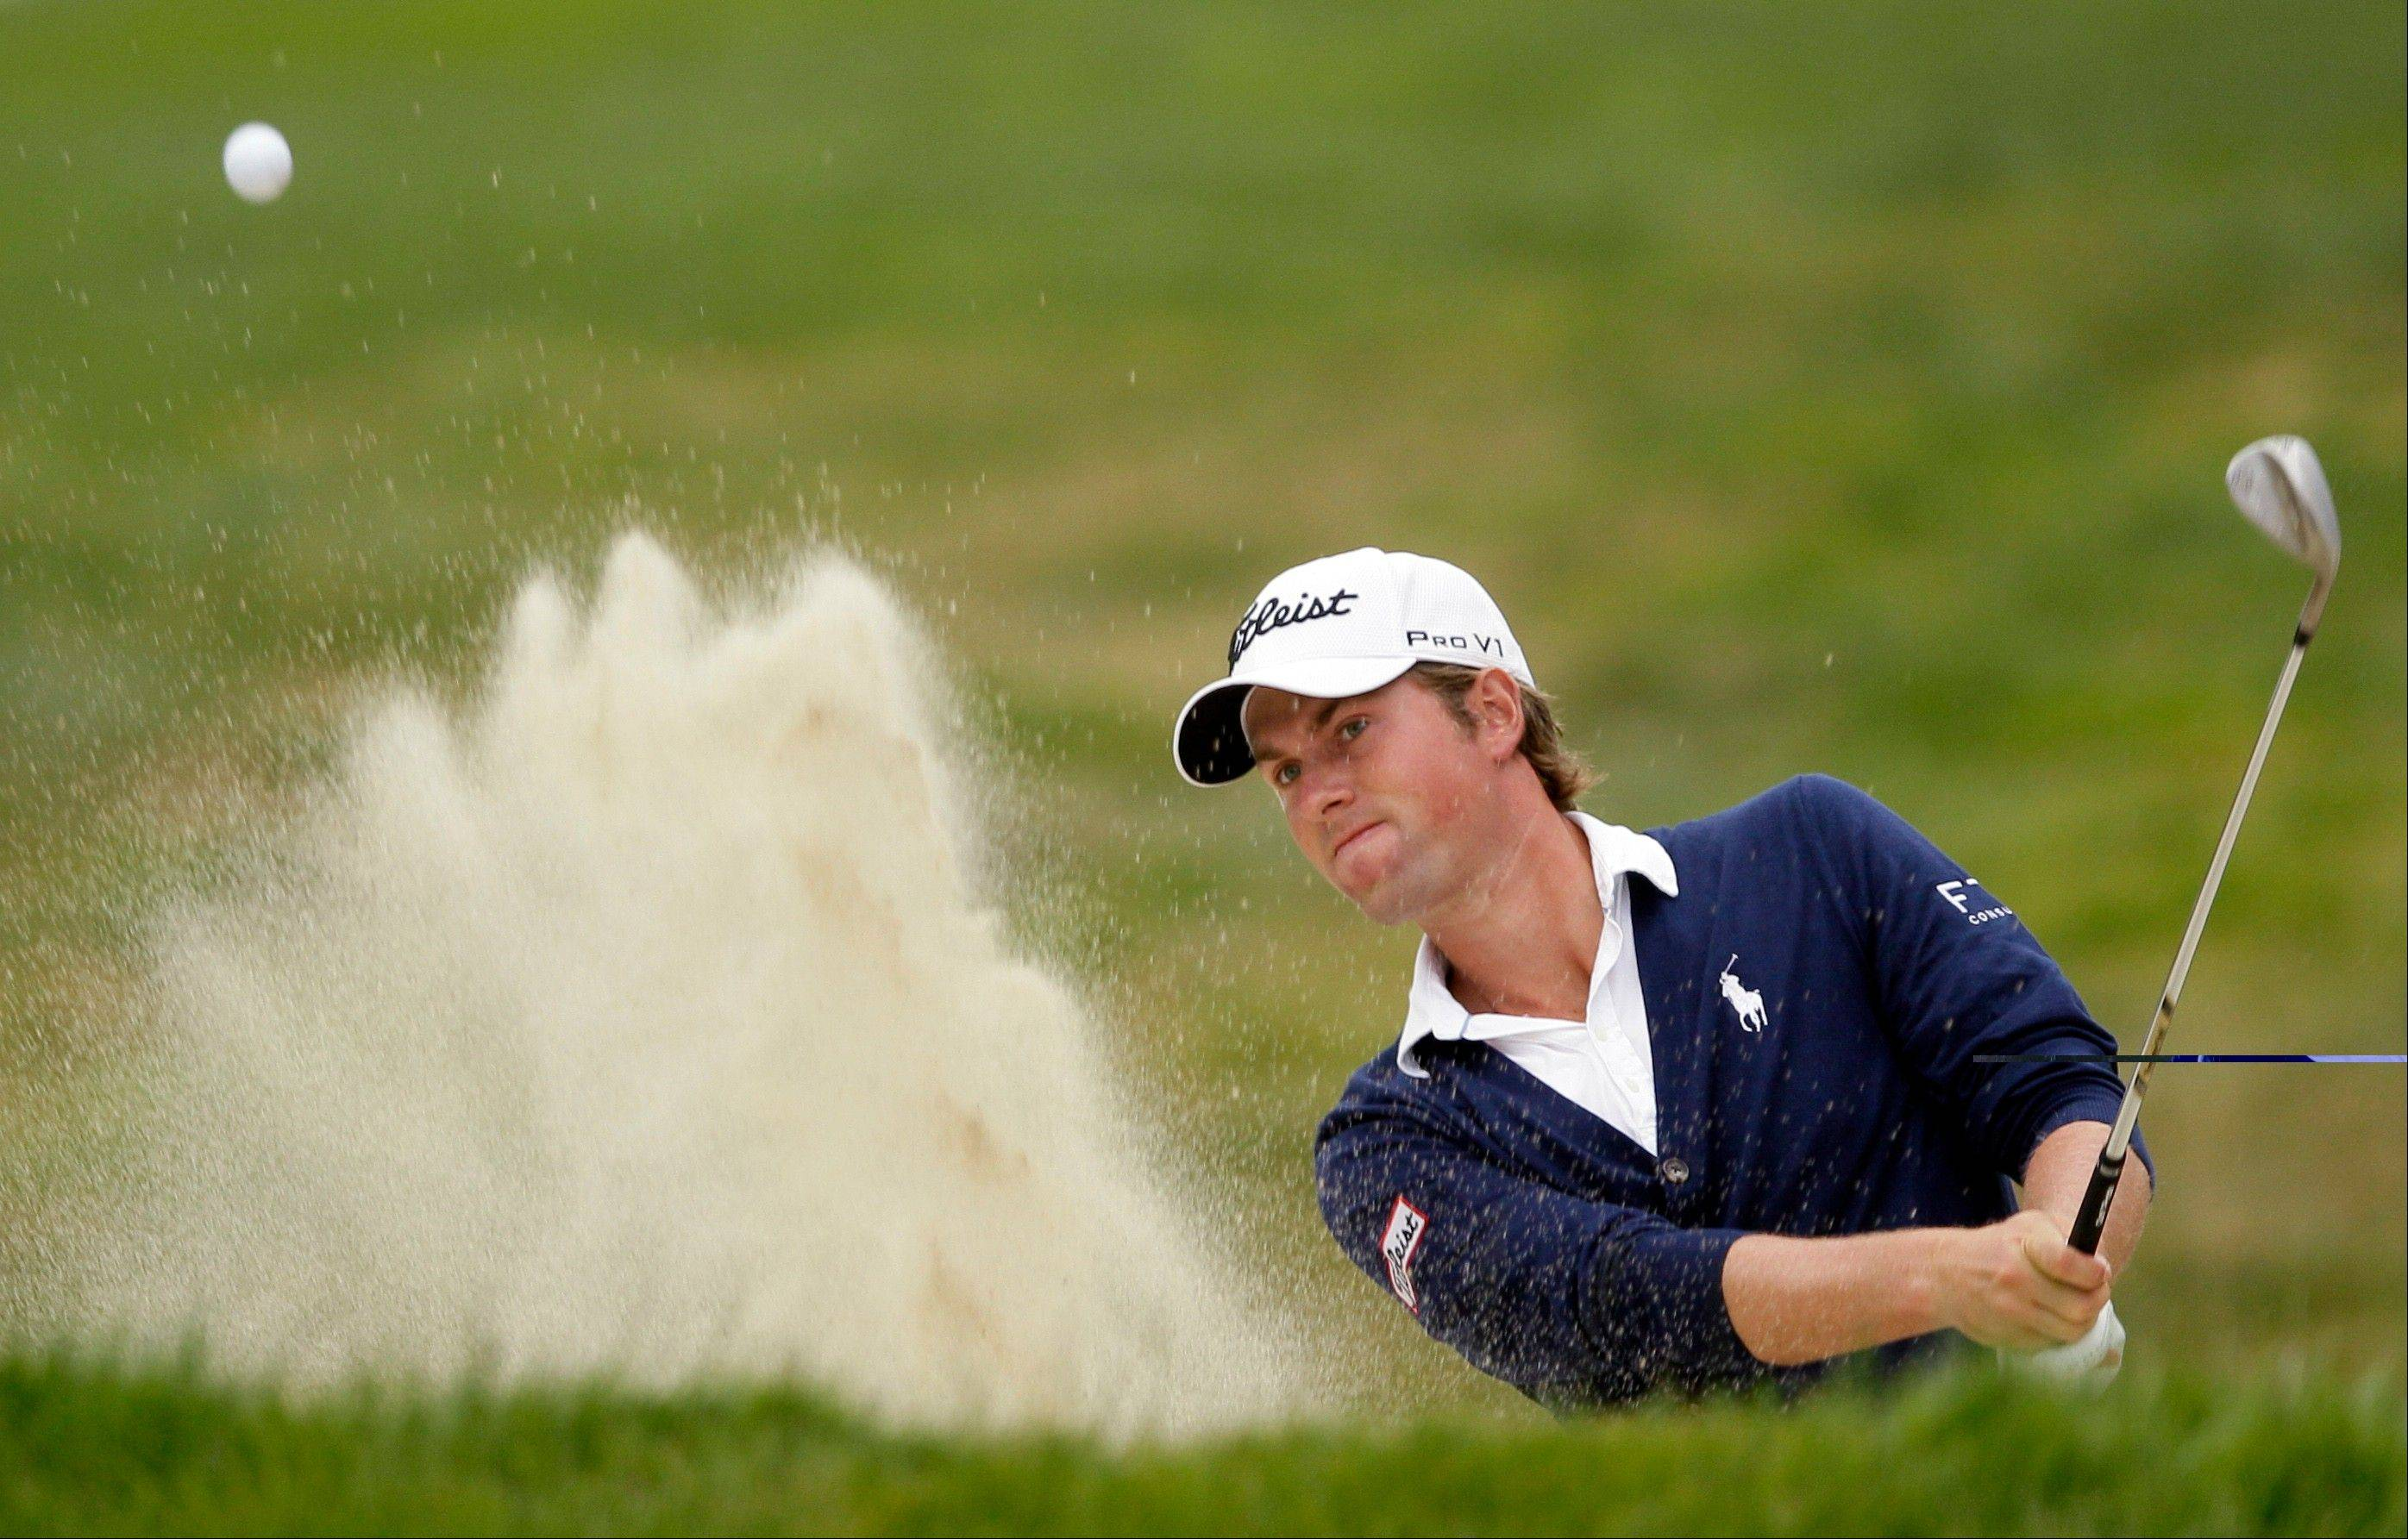 Webb Simpson hits out of a bunker on the 17th hole during the fourth round of the U.S. Open Championship golf tournament Sunday, June 17, 2012, at The Olympic Club in San Francisco.